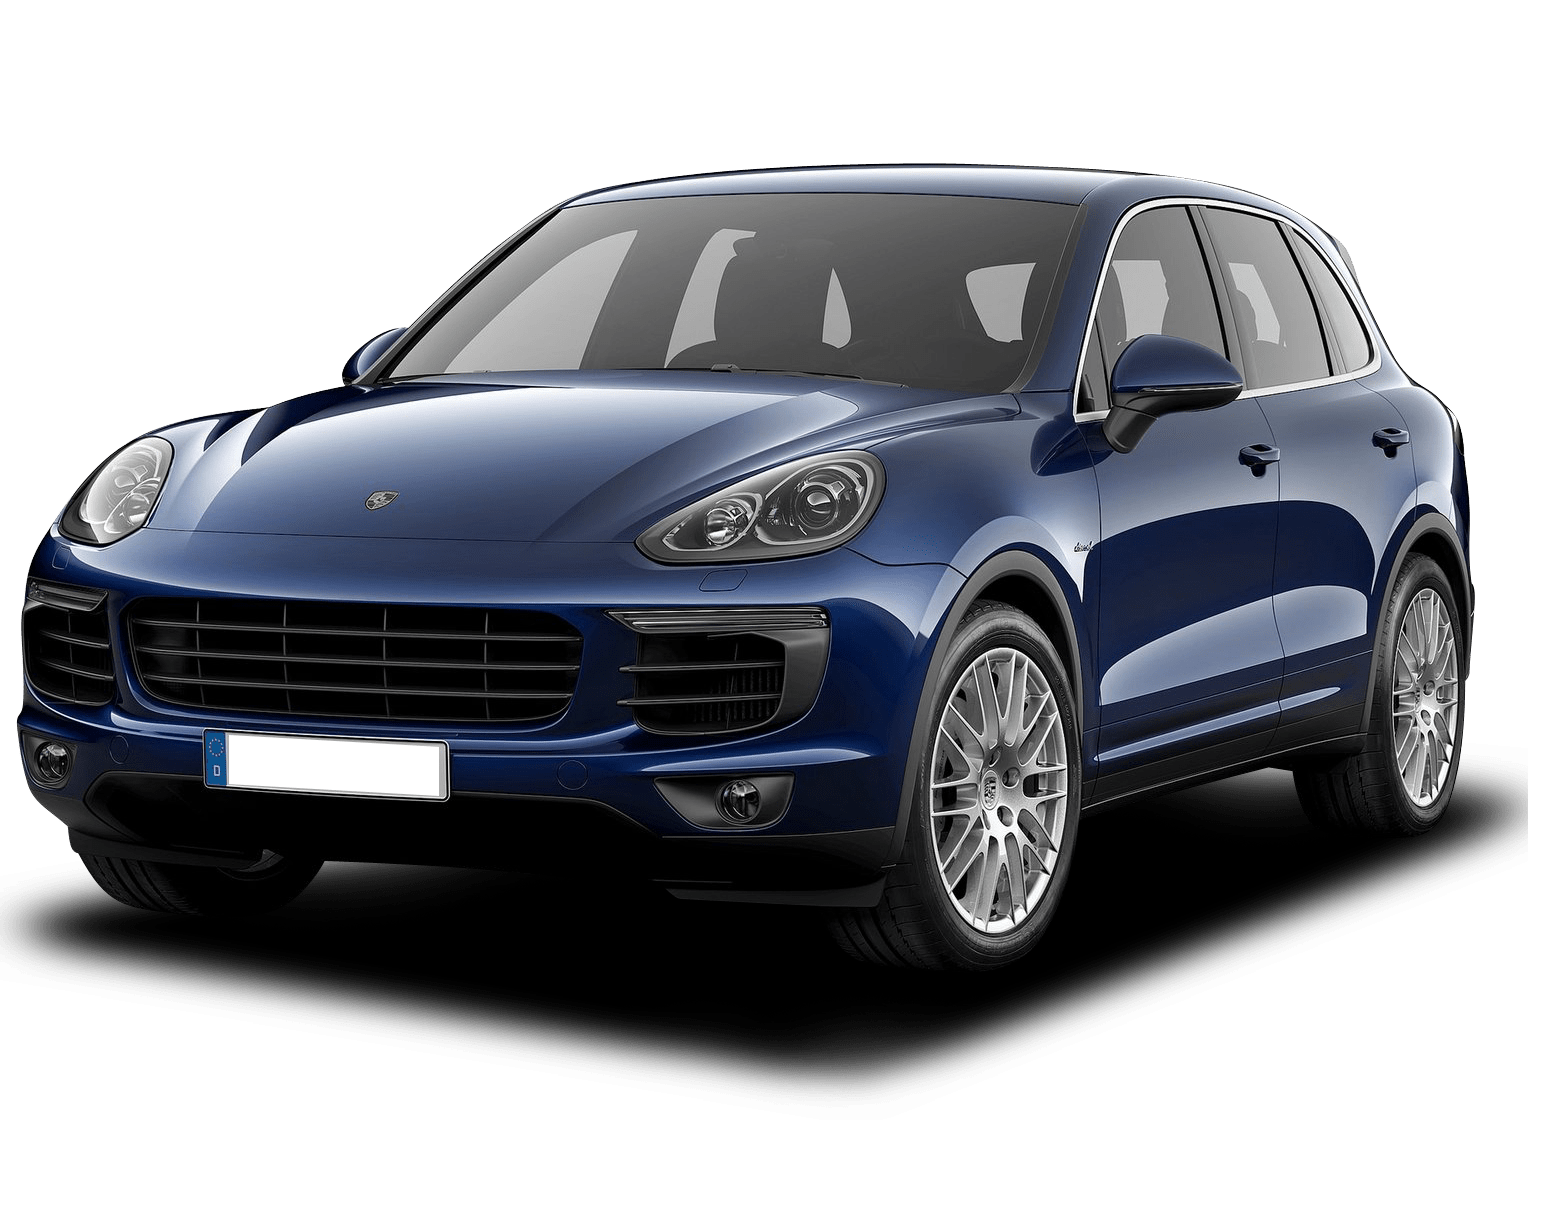 Porsche Cayenne Review Price For Sale Colours Interior Specs Carsguide